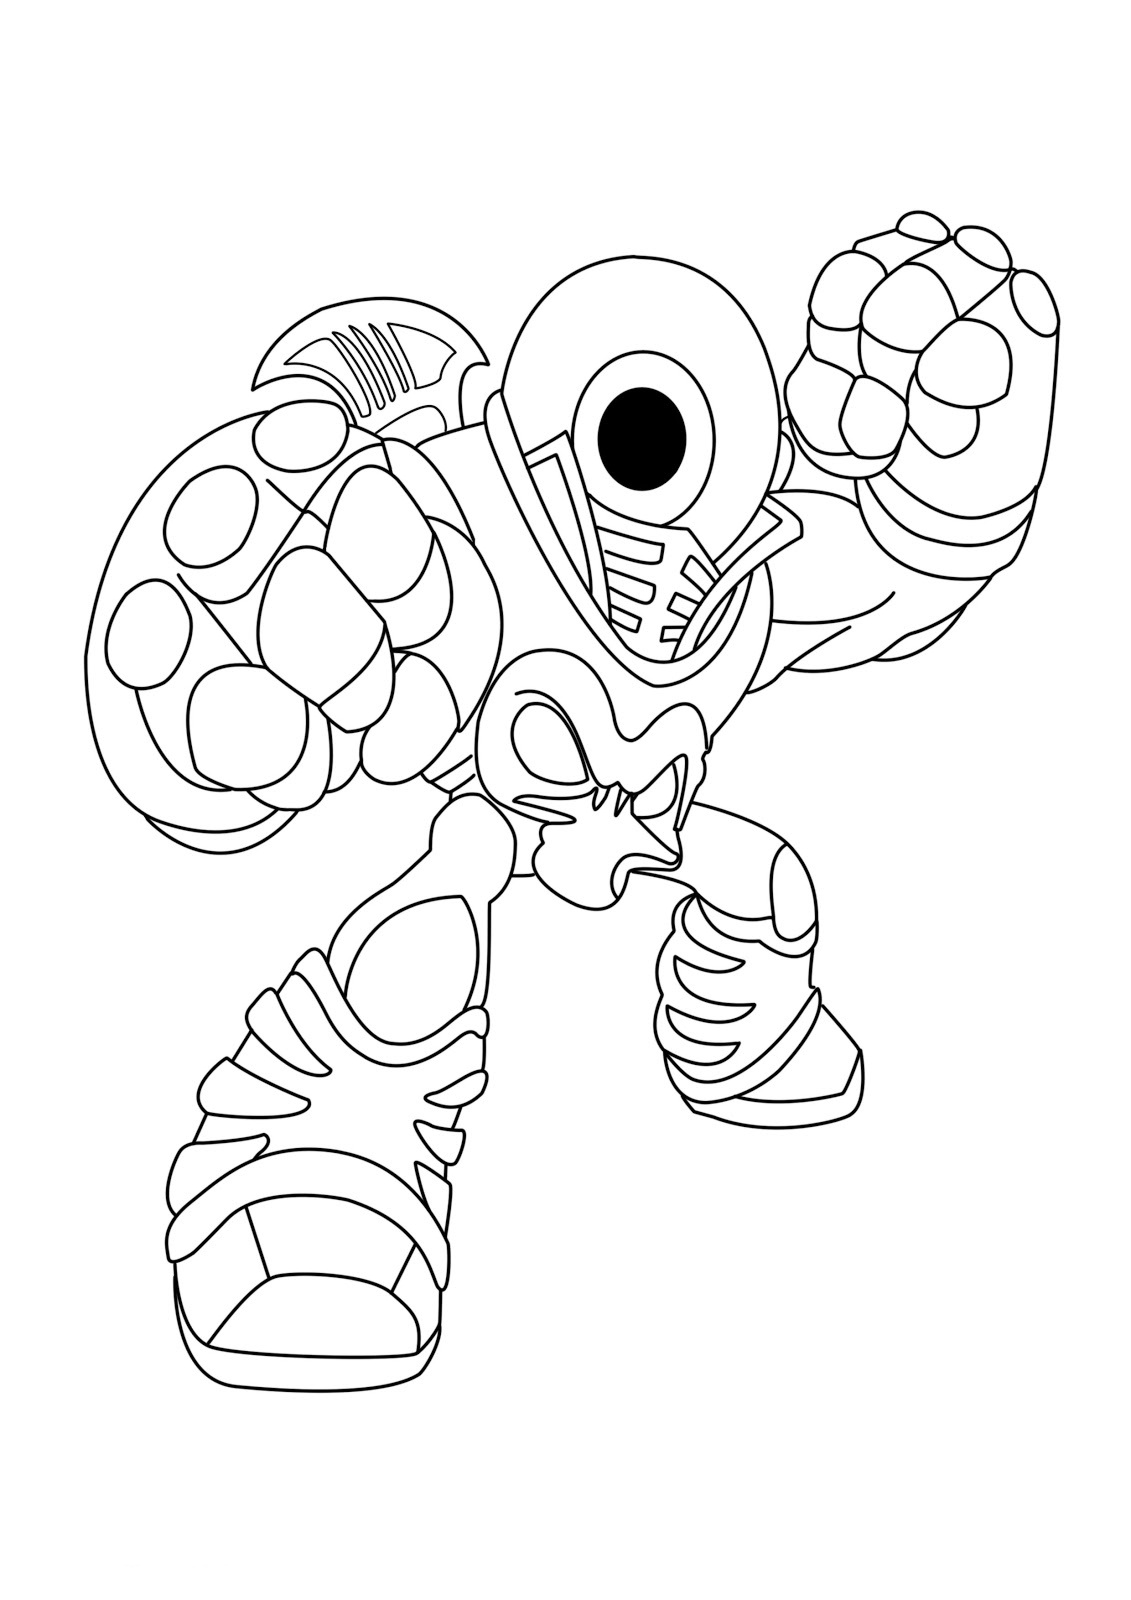 Skylander Coloring Pages Awesome Free Printable Skylander Giants Coloring Pages For Kids Design Inspiration